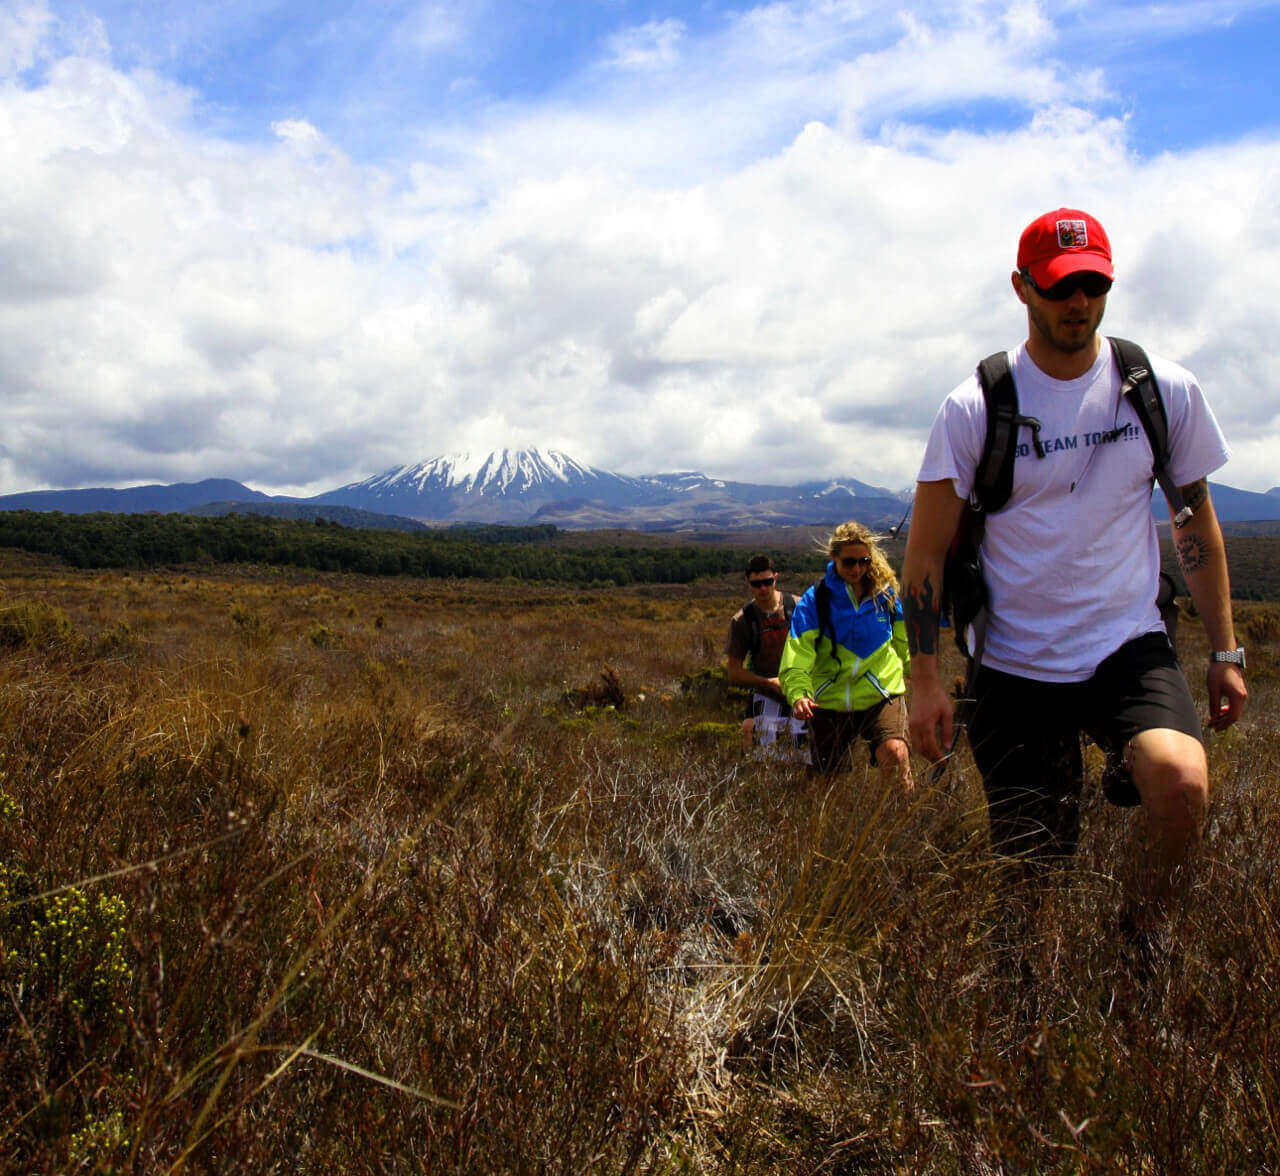 Hiking in the Tongariro National Park